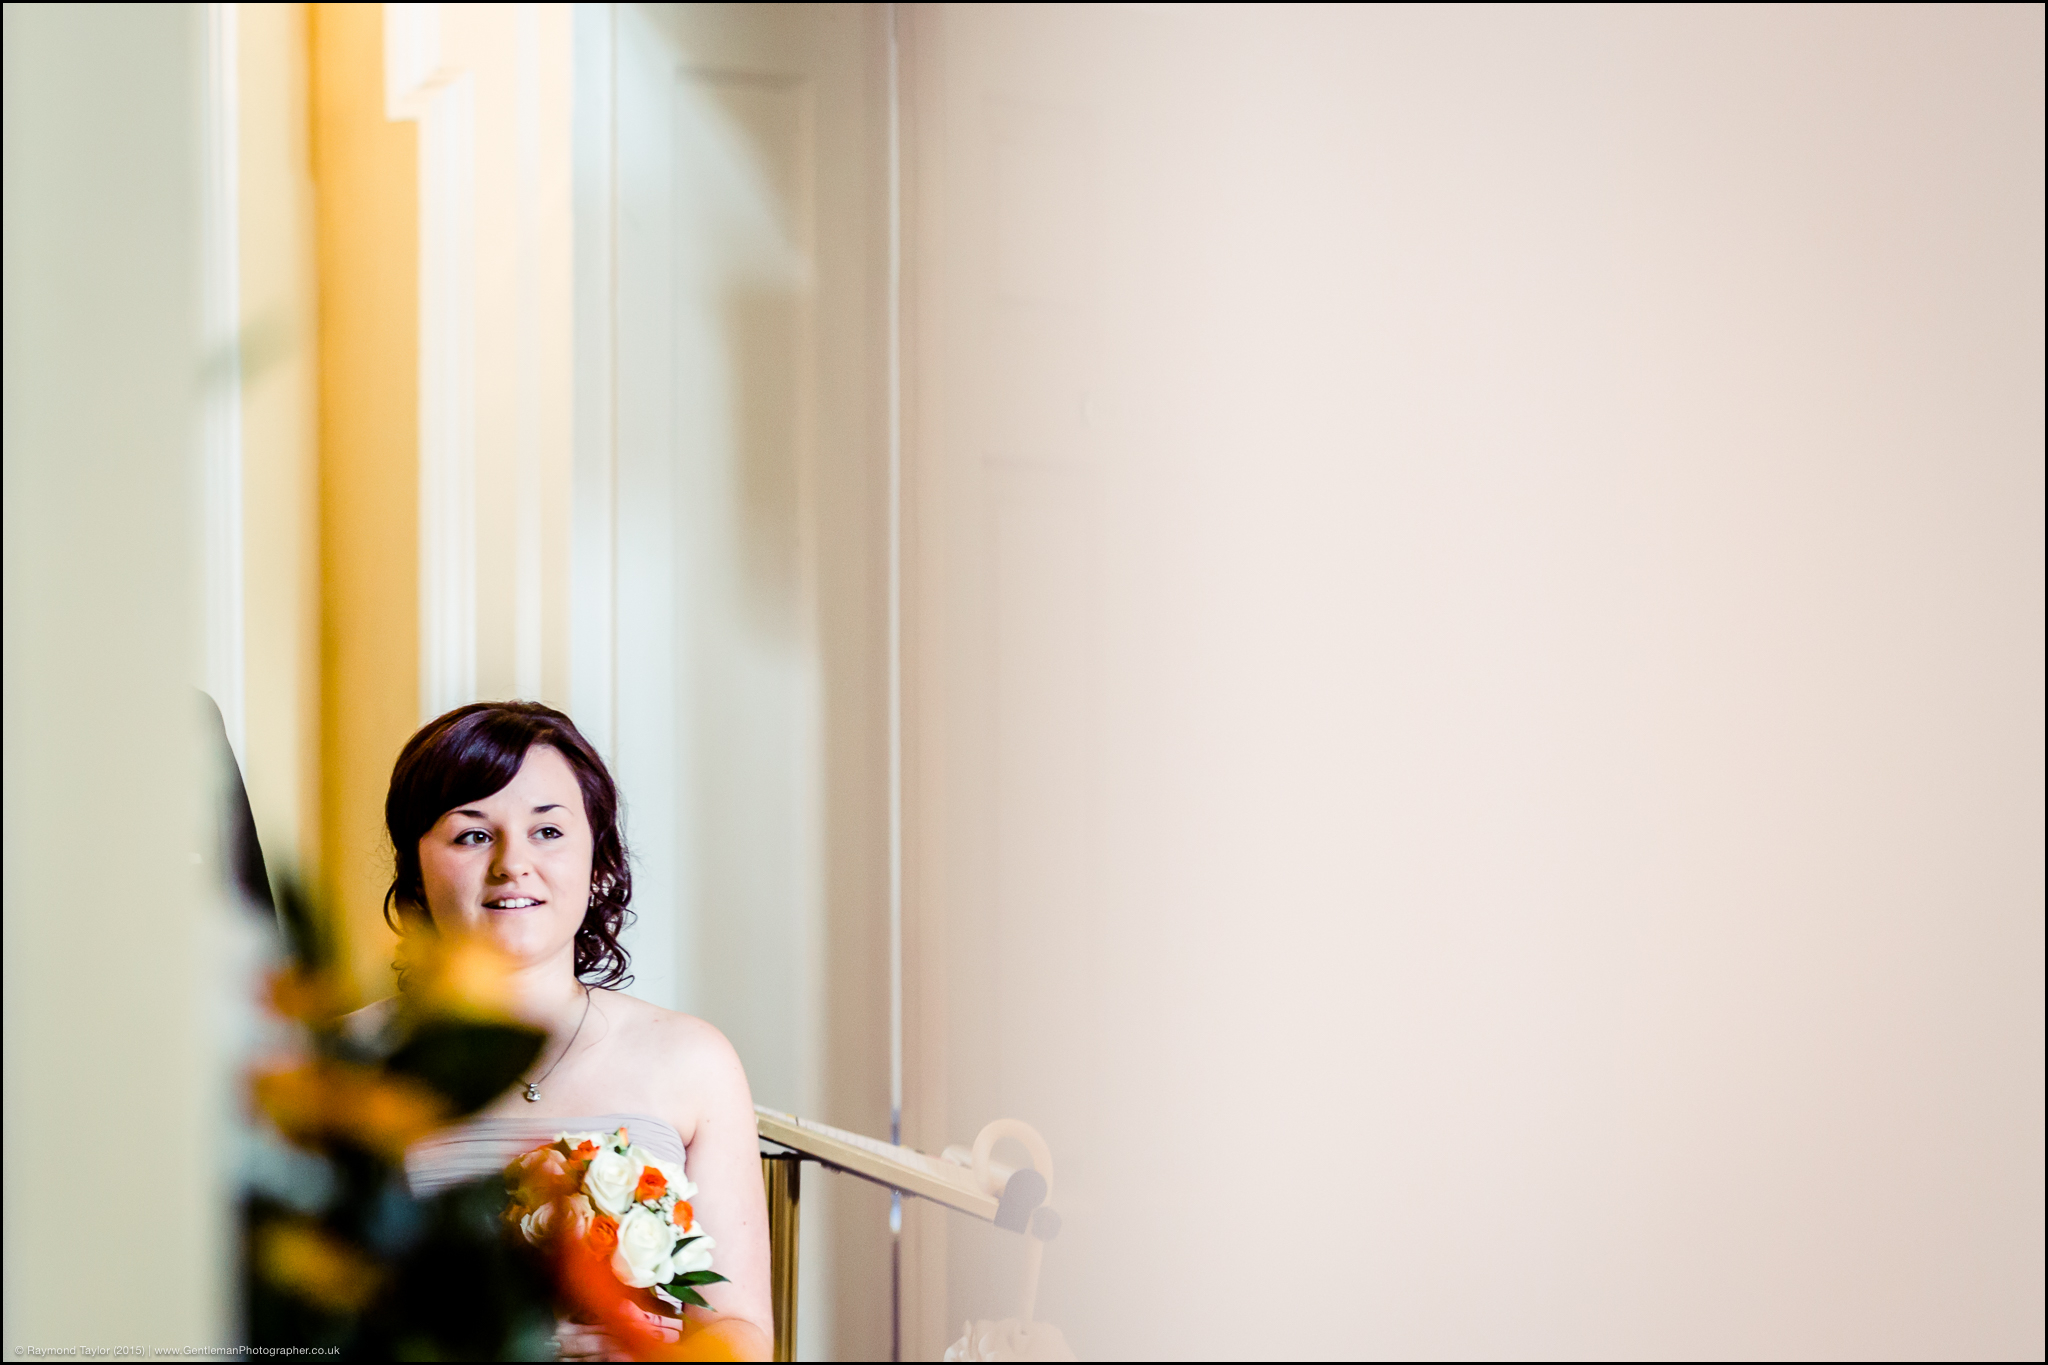 Assembly House, Norwich – Wedding of Jude and Matt